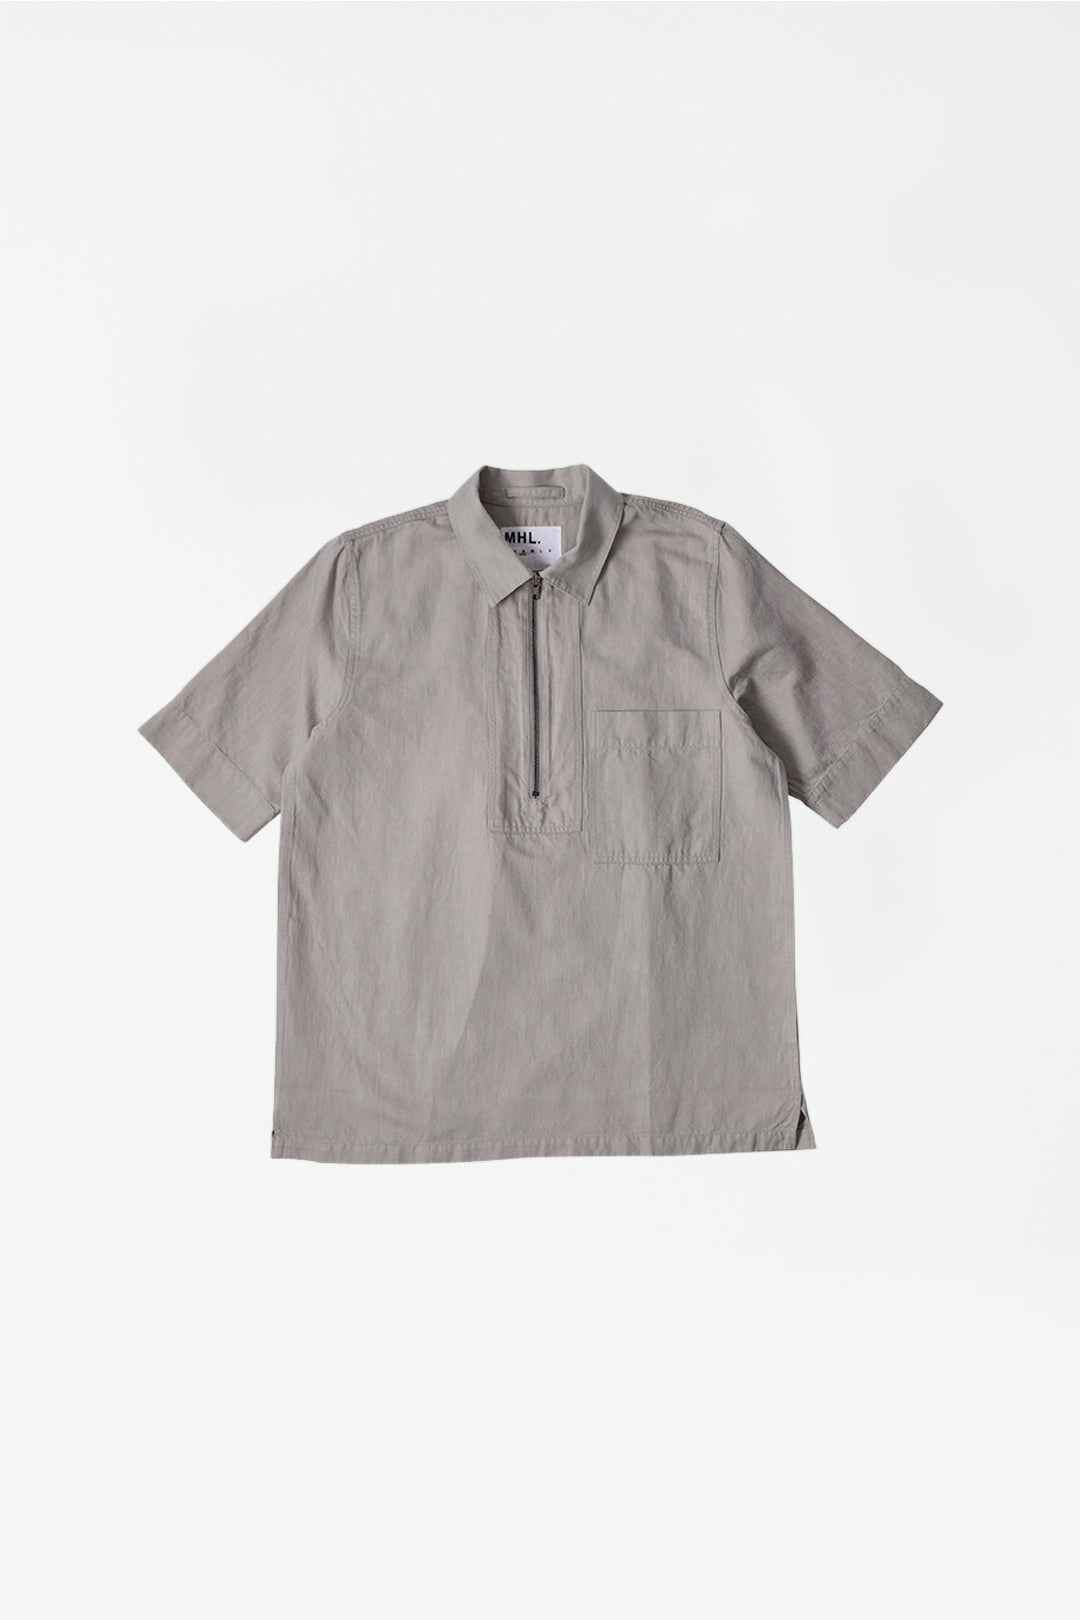 Zip fly shirt cotton linen cloud